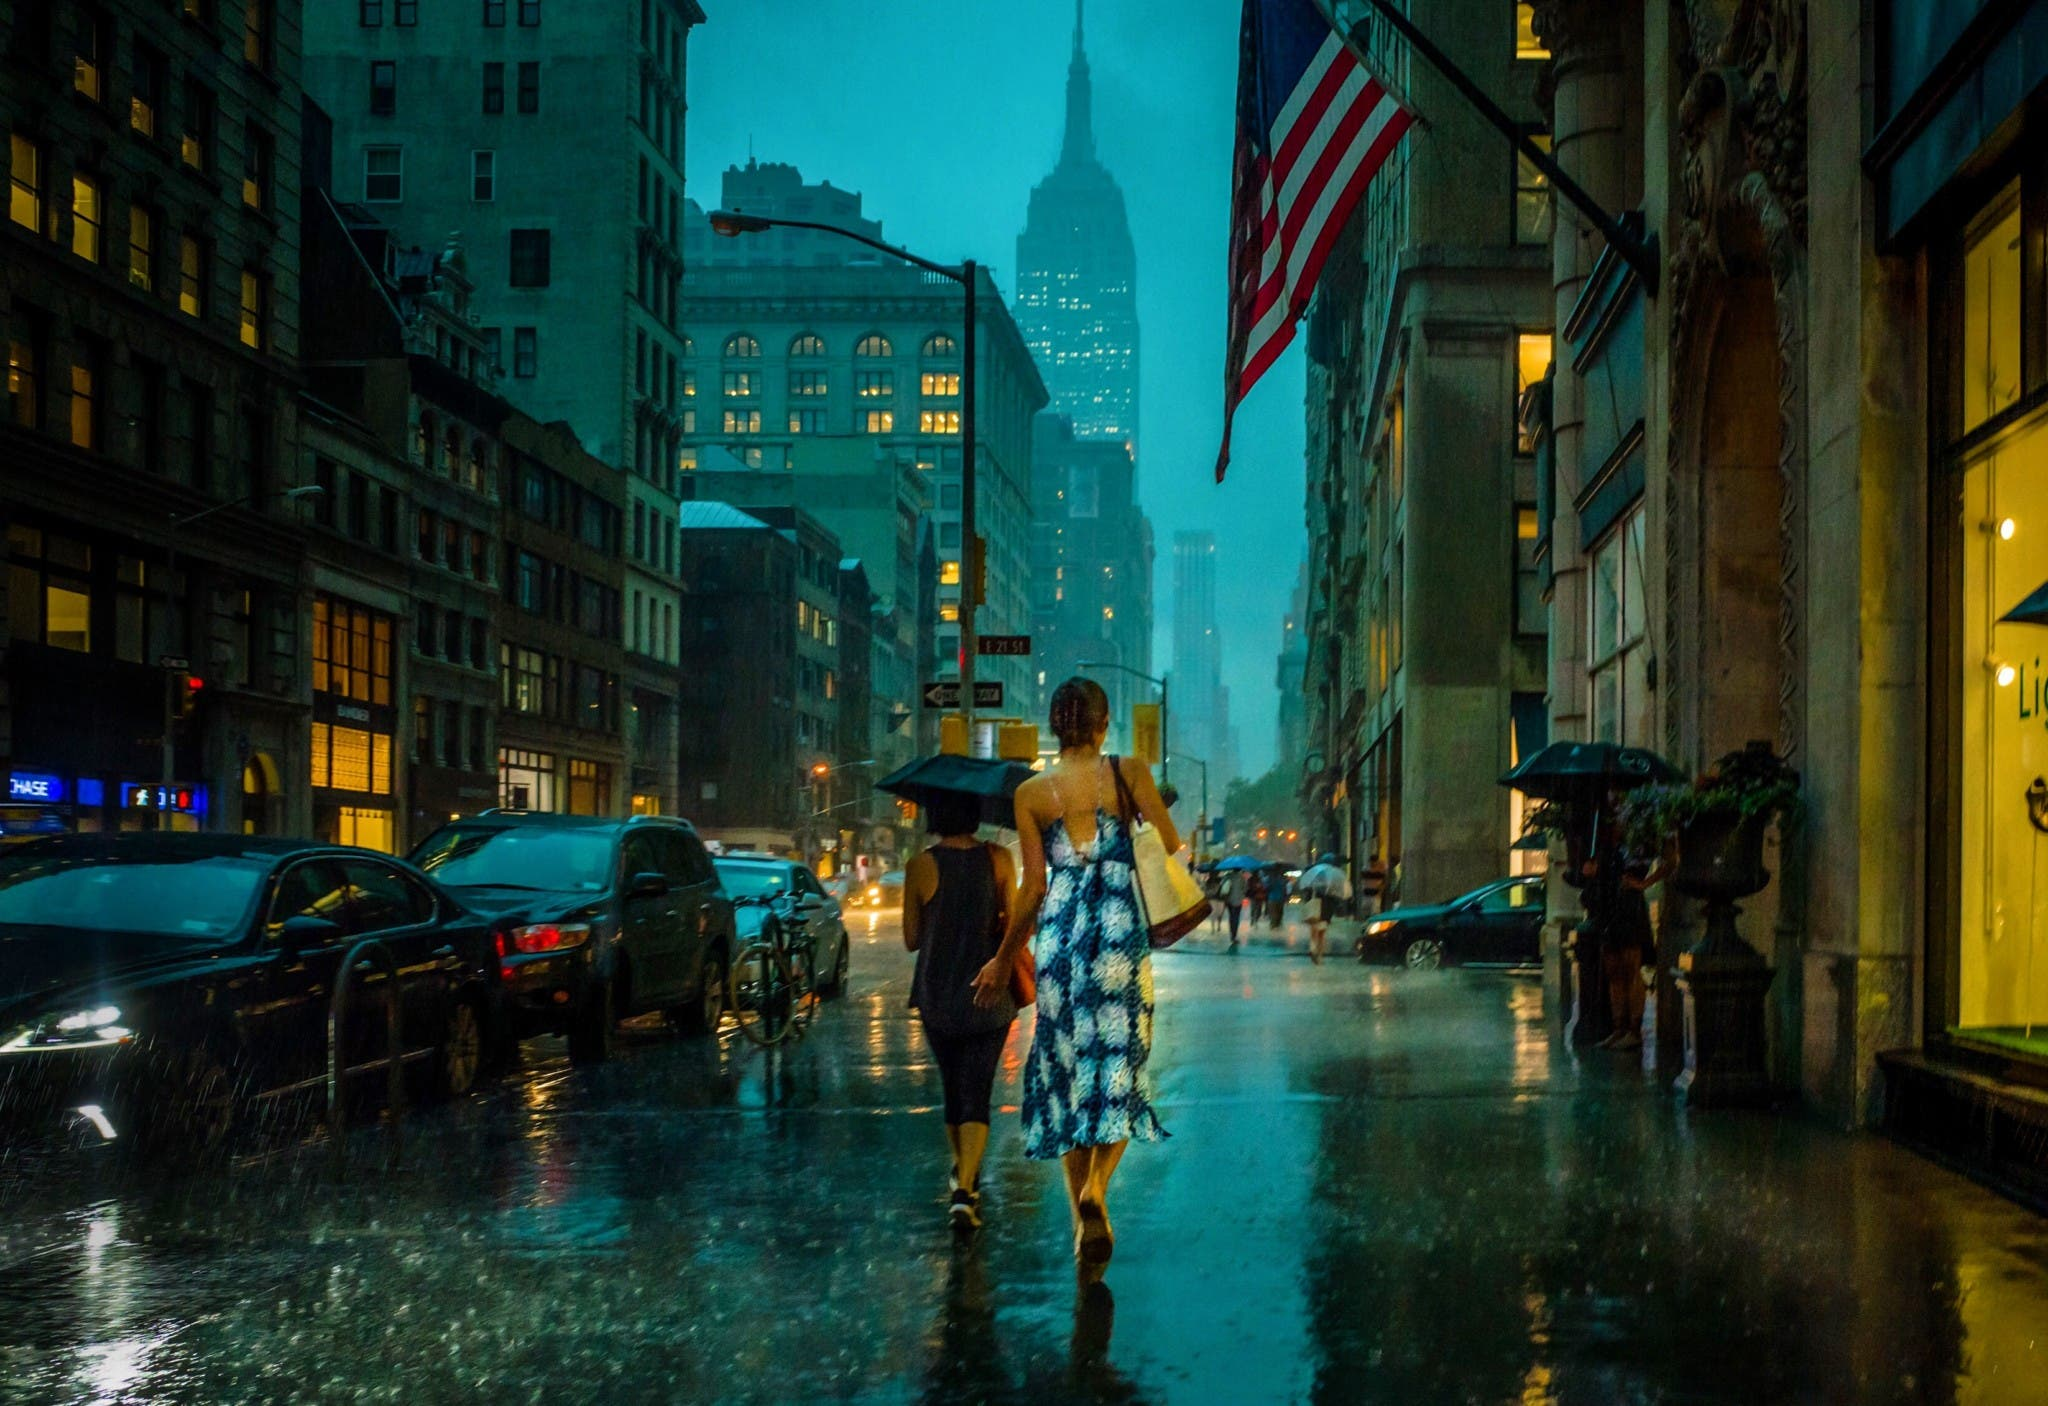 Michele Palazzo's Images of NYC in the Rain Evoke a Painterly Beauty